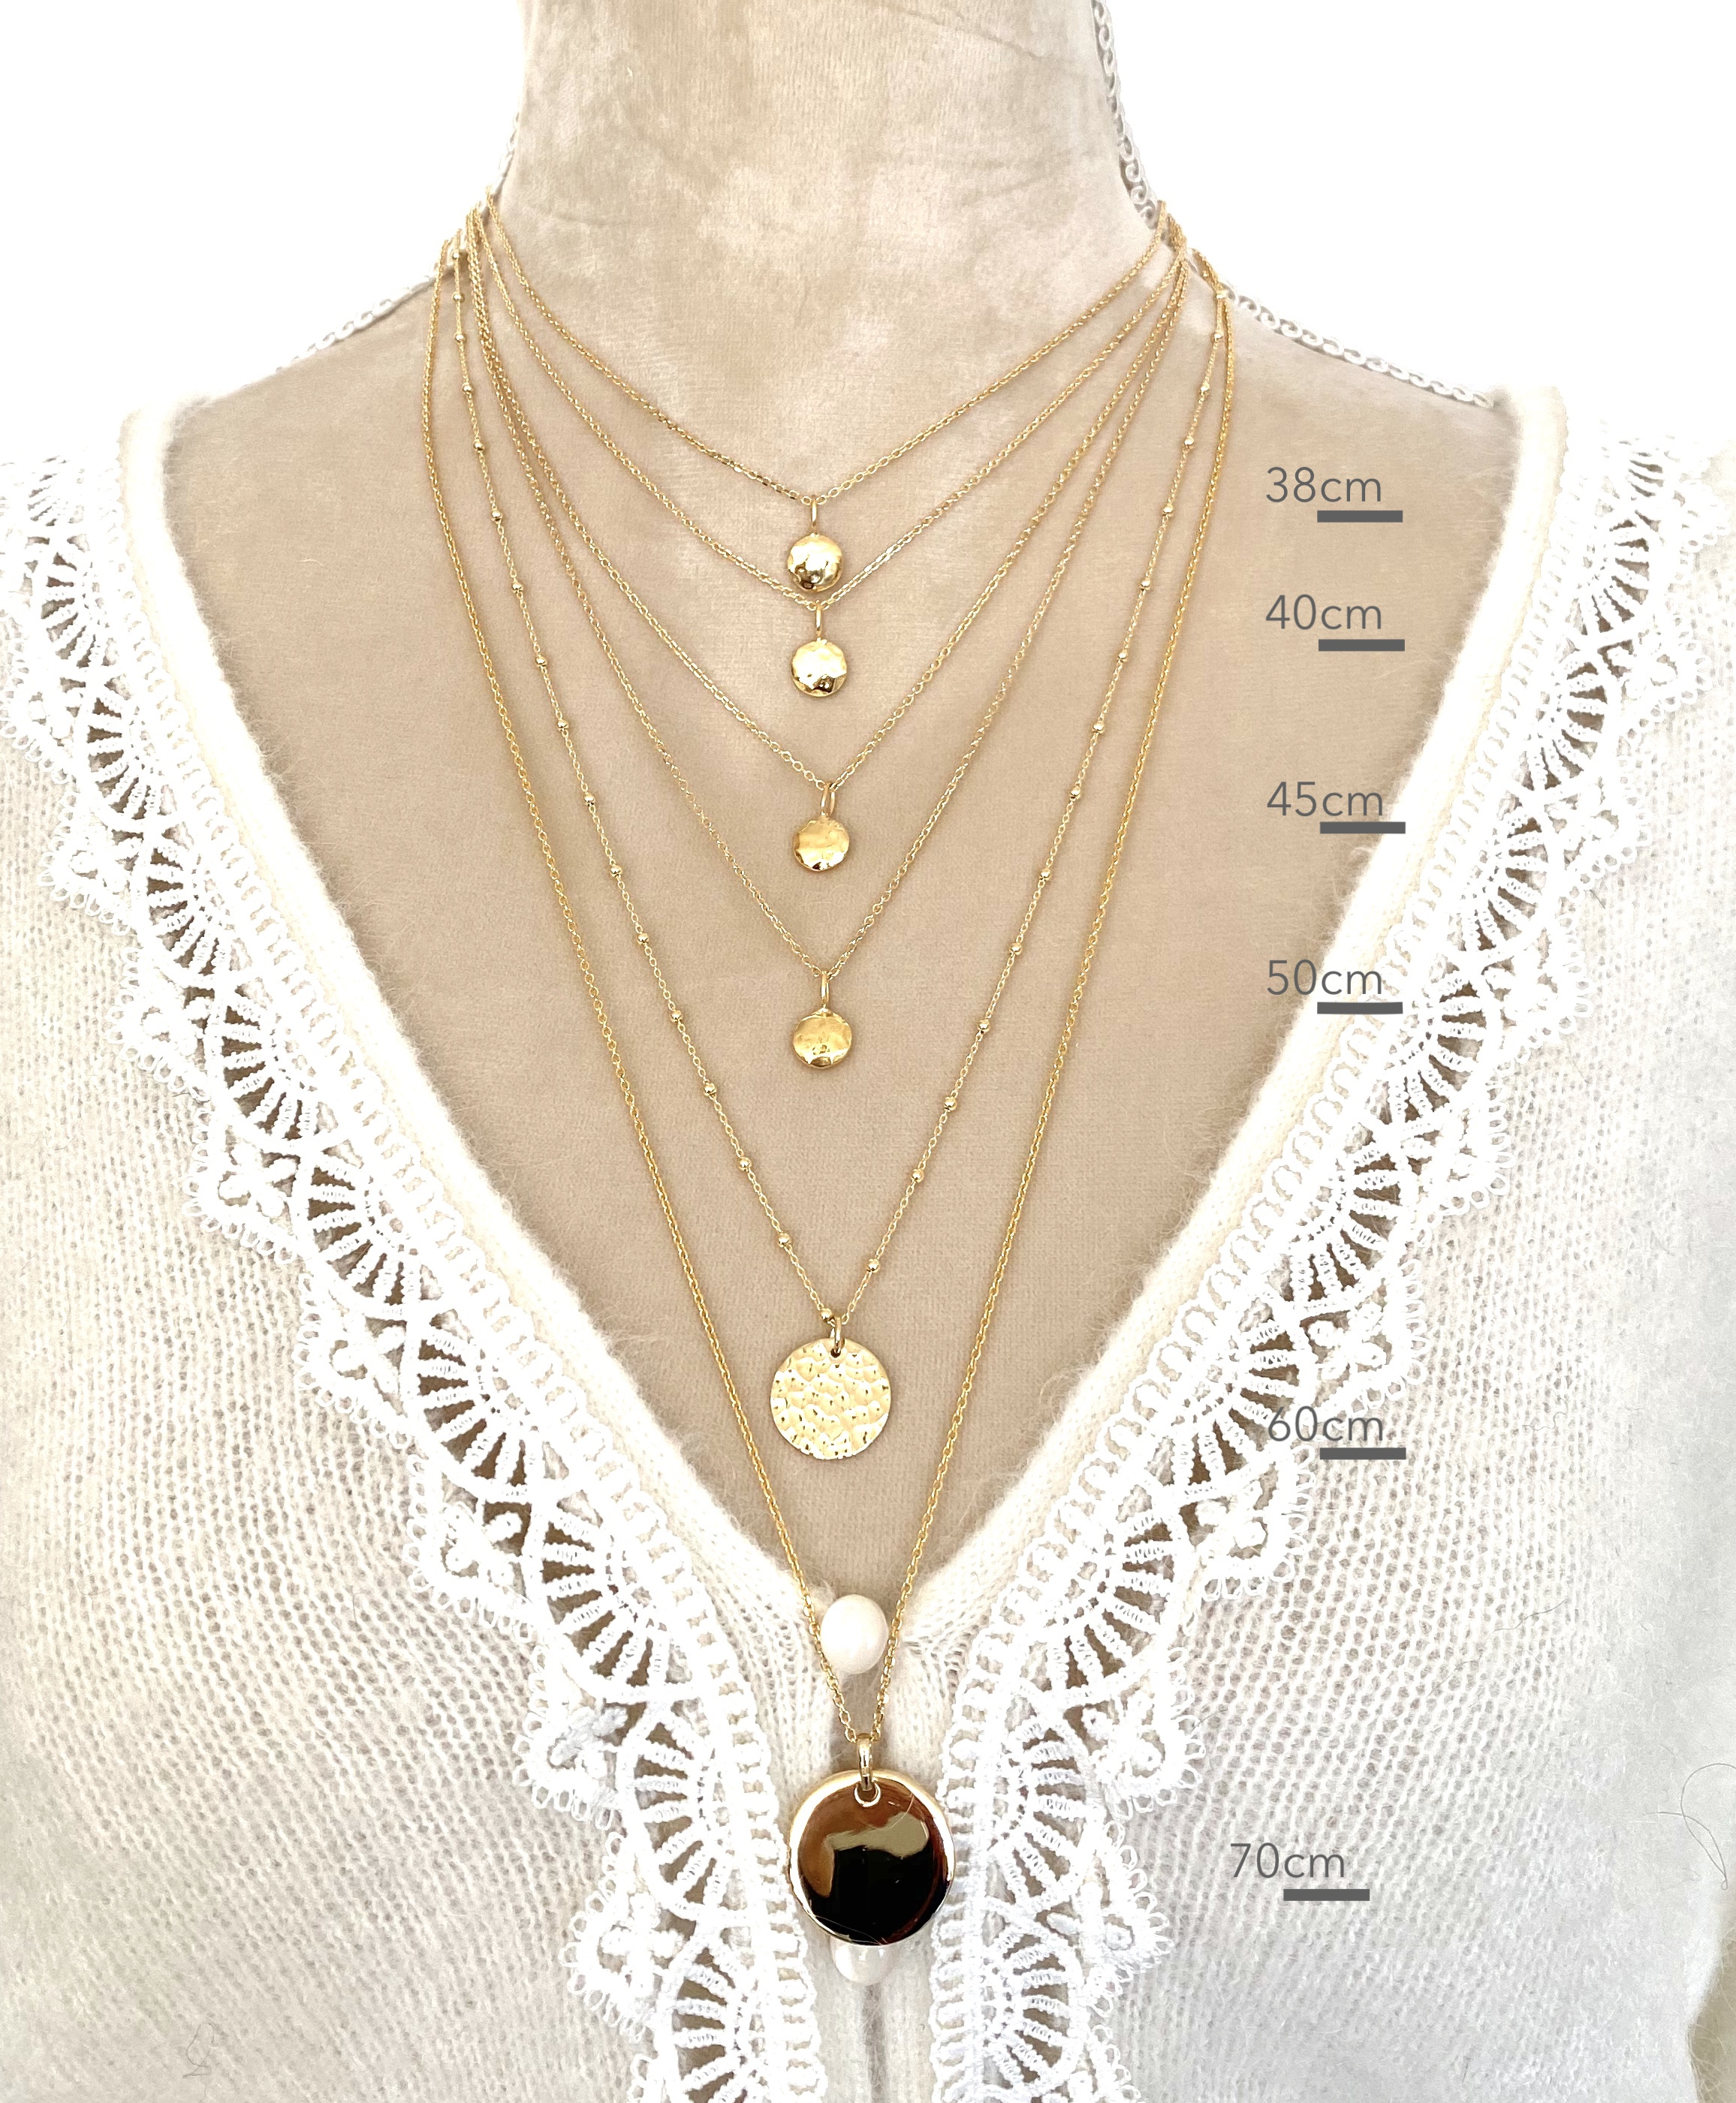 Guide%20Taille%20Collier.jpg